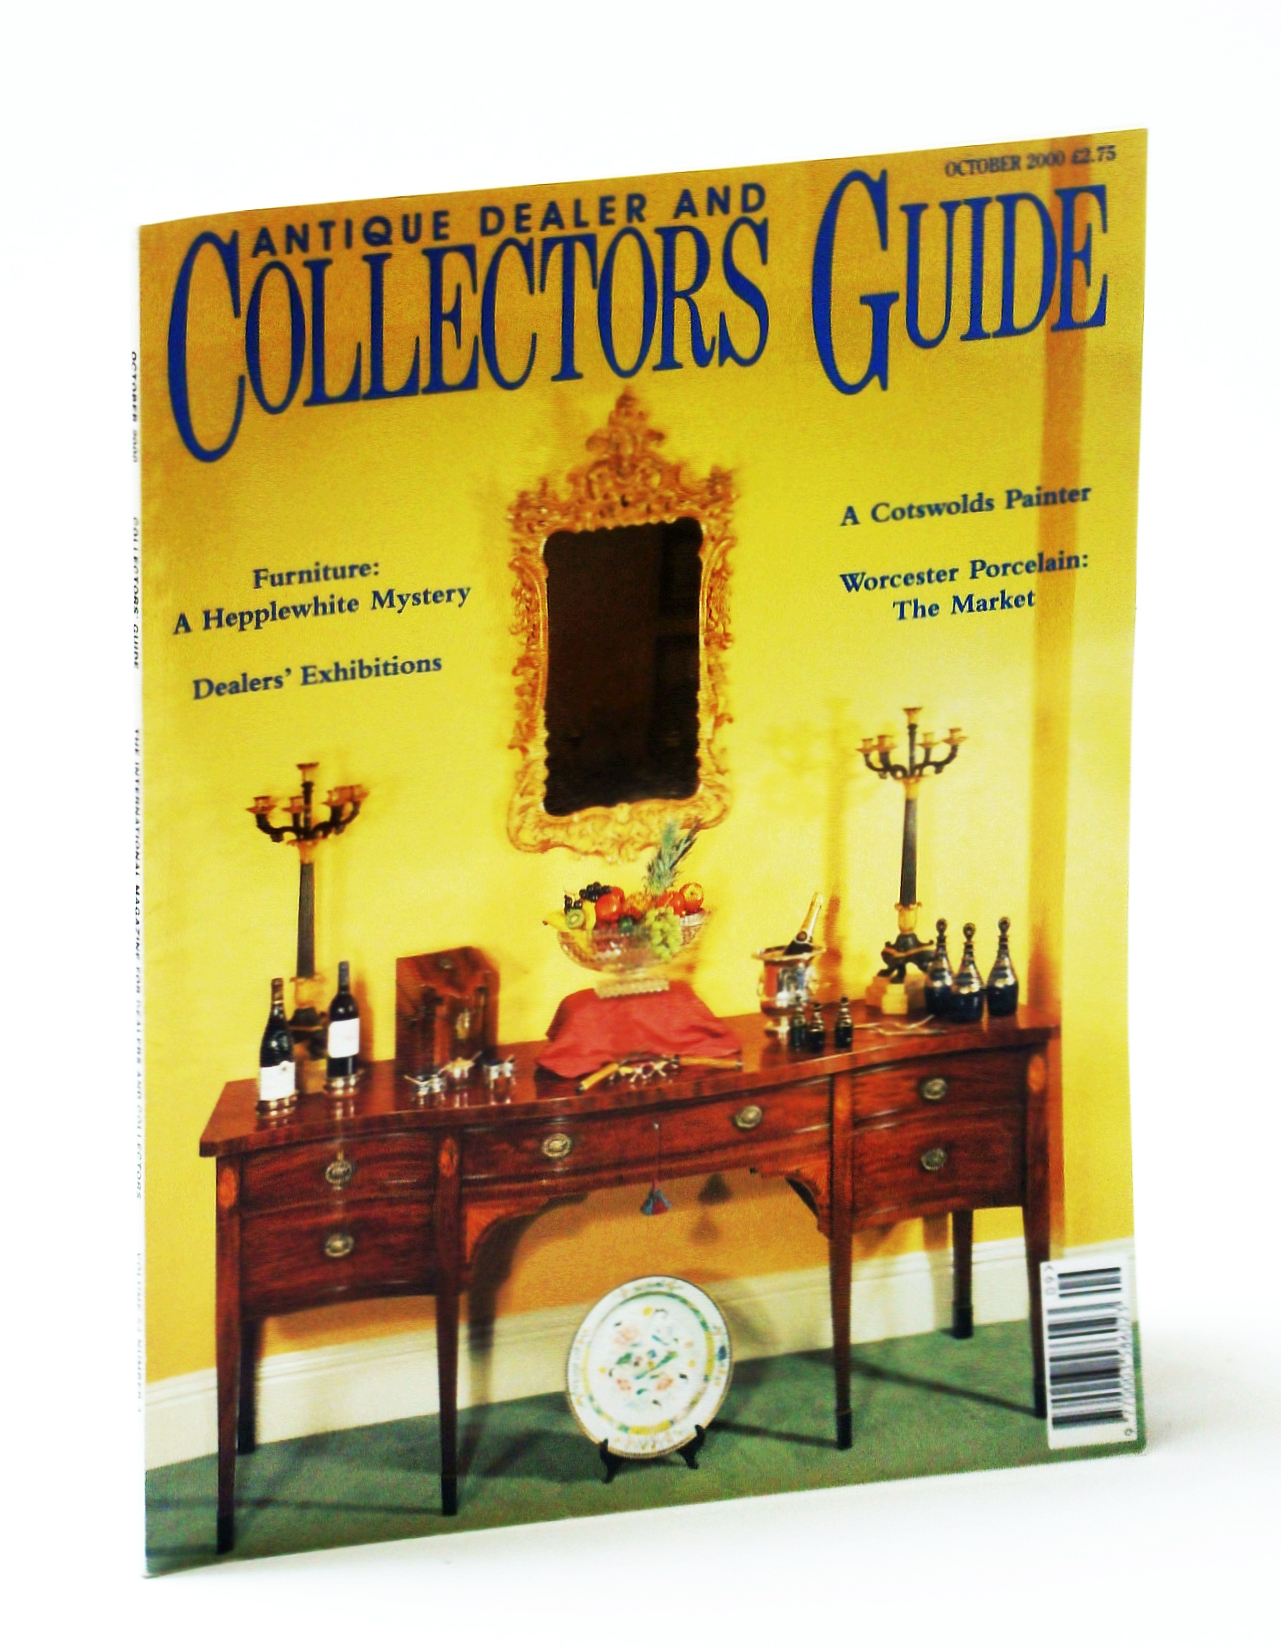 Image for Antique Dealer and Collectors Guide Magazine, October (Oct.) 2000 - Collecting Orrefors / Who Was Hepplewhite? / George Barret Junior